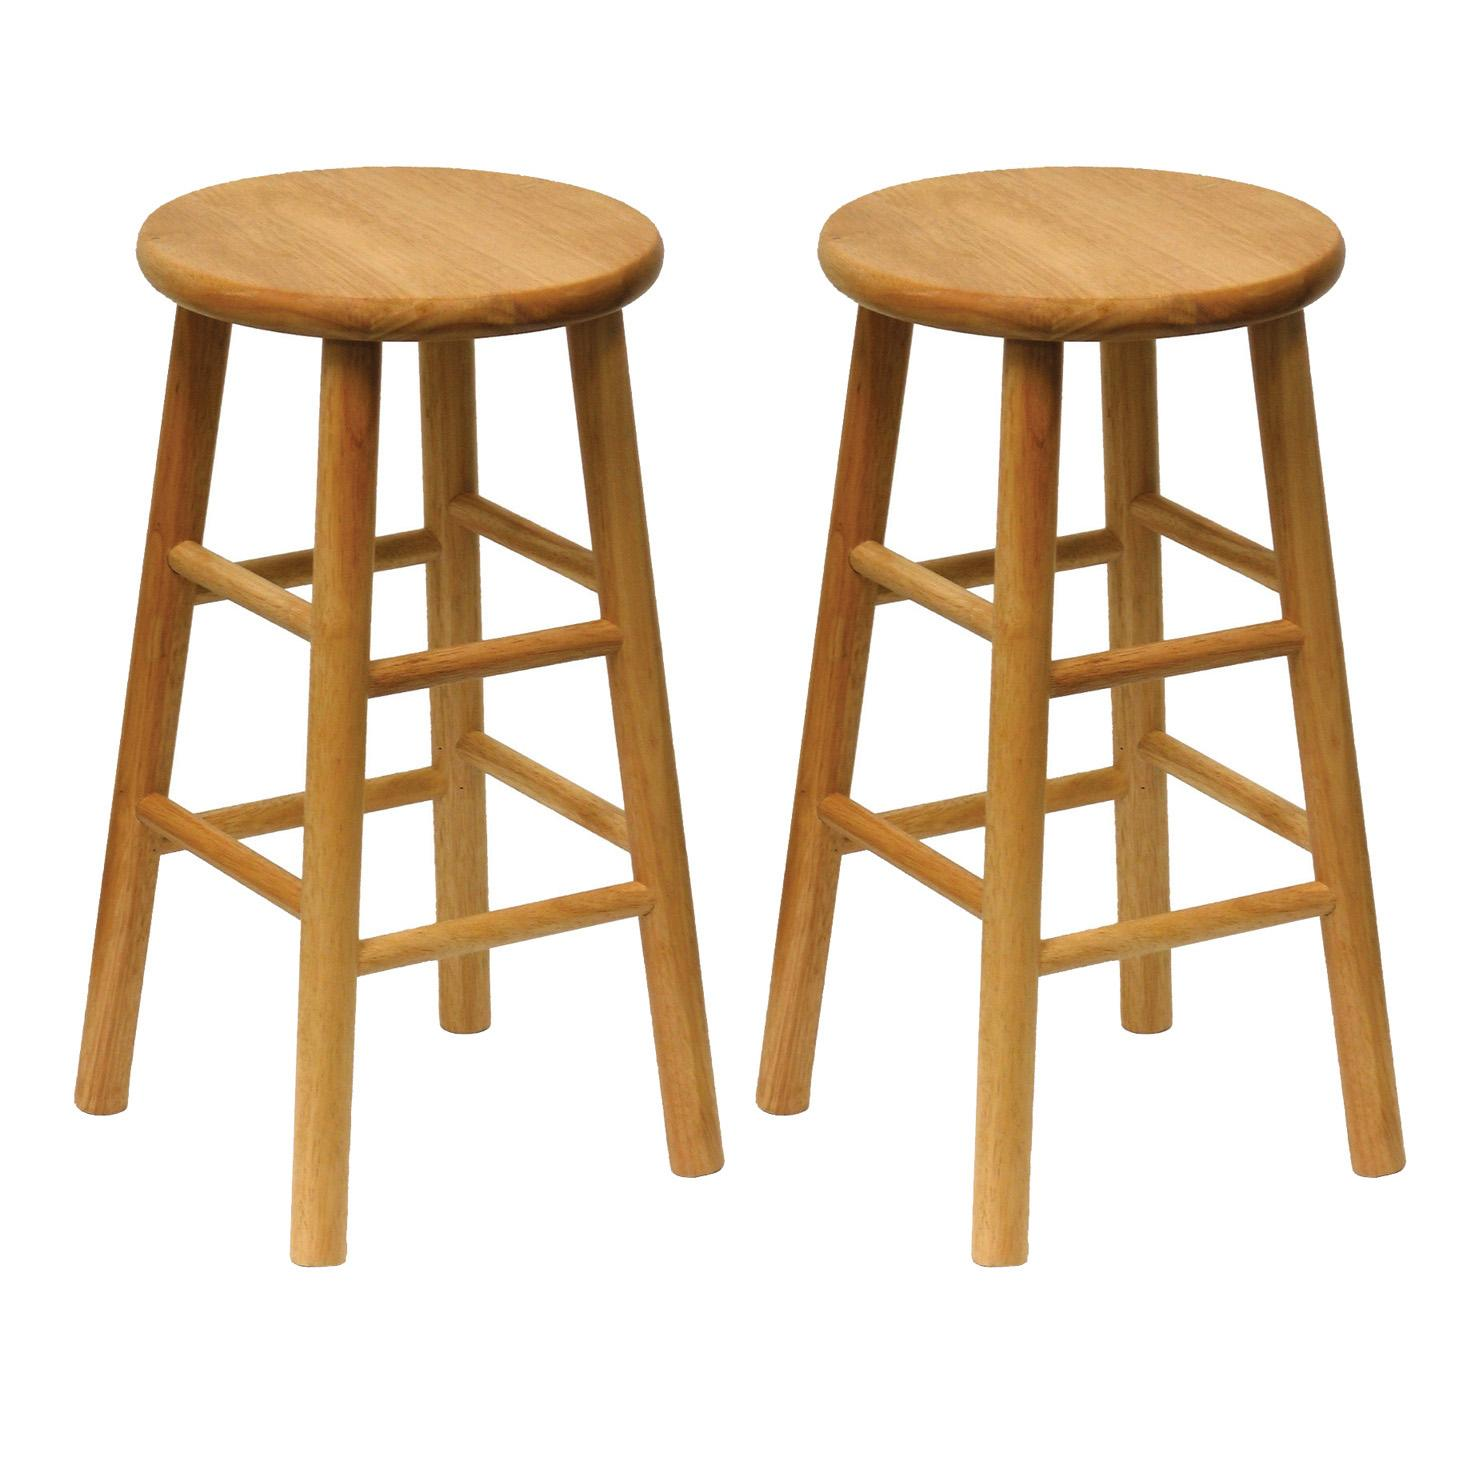 Winsome Wood Wood 24 Inch Counter Stools Set Of 2 Natural Finish Kitchen Dining